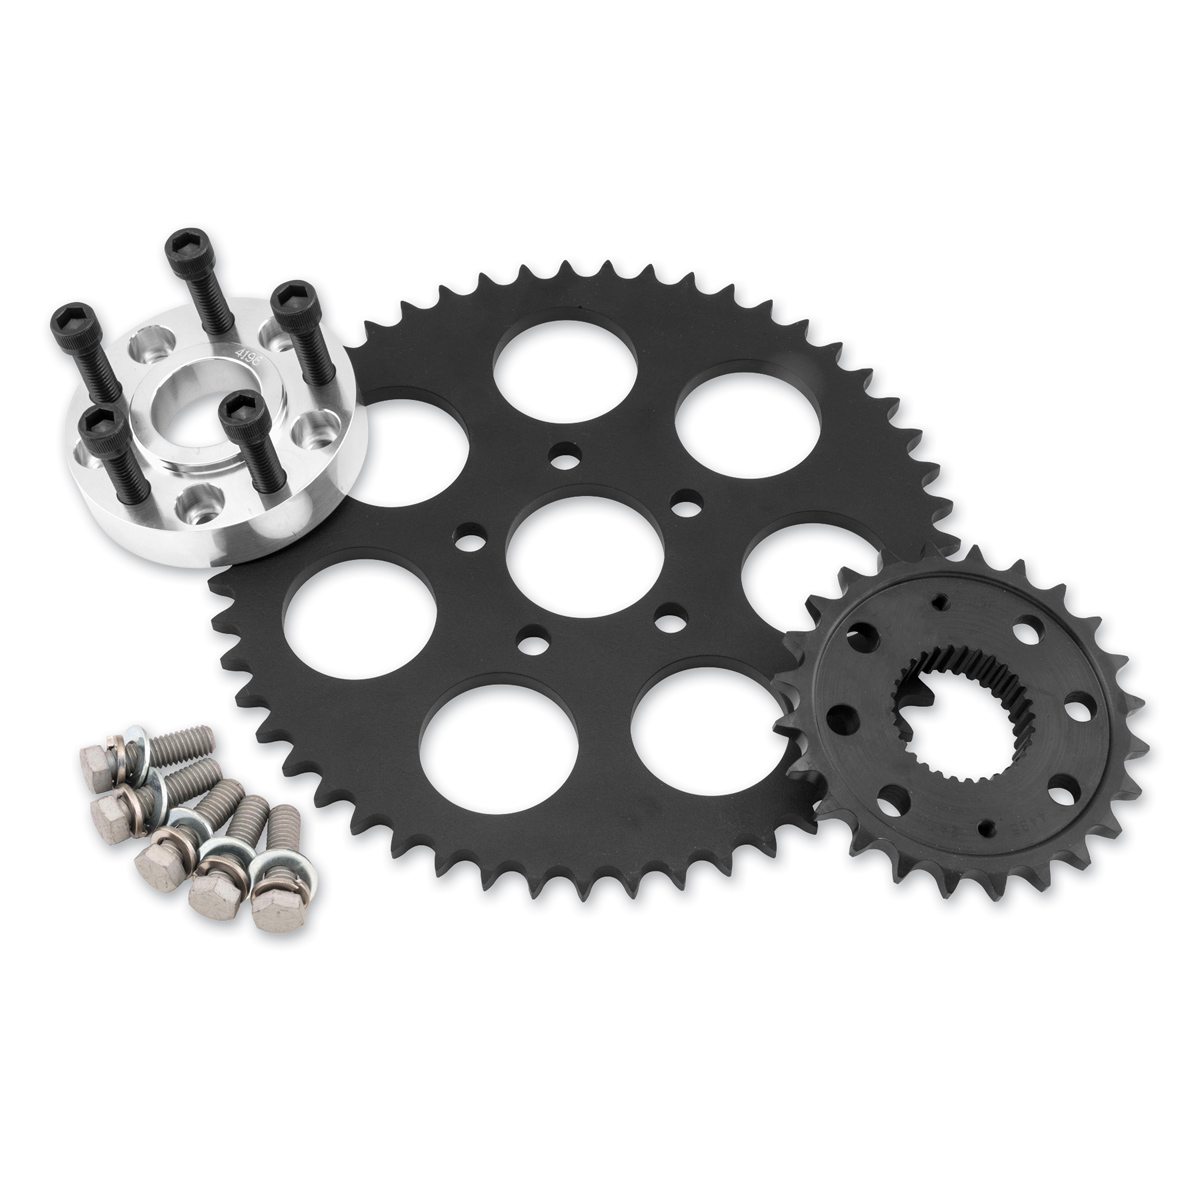 Twin Power Chain Conversion Kit 22T/48T - 4661